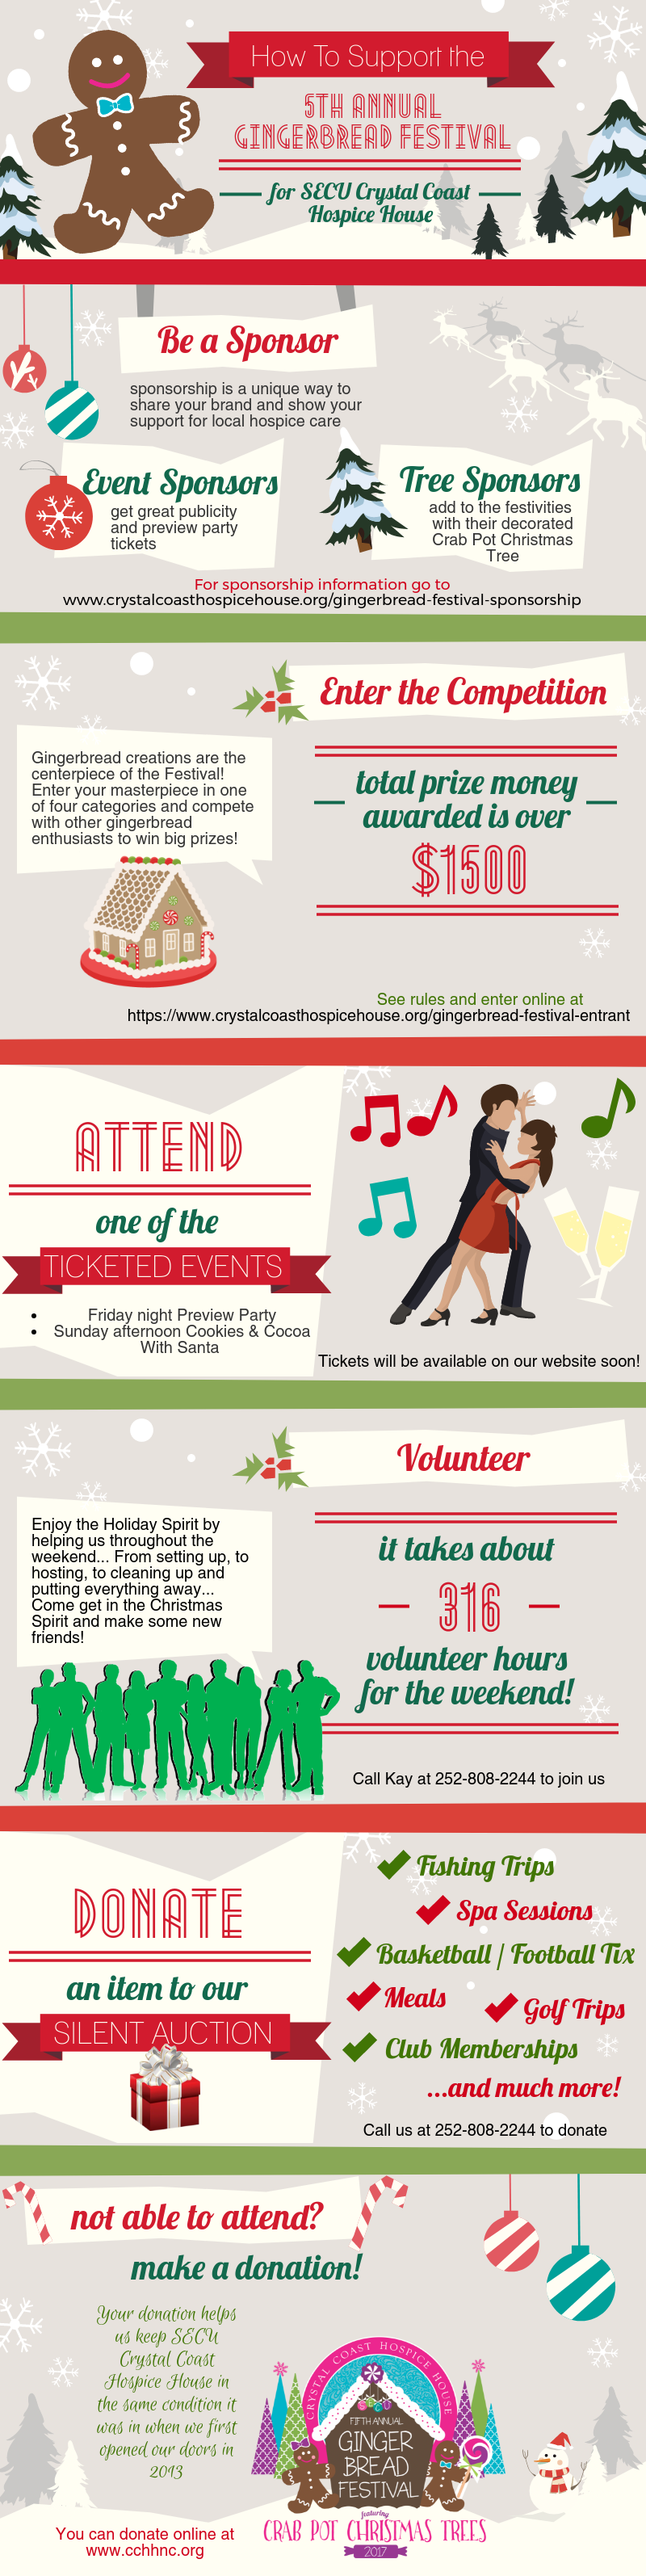 Support The Gingerbread Festival